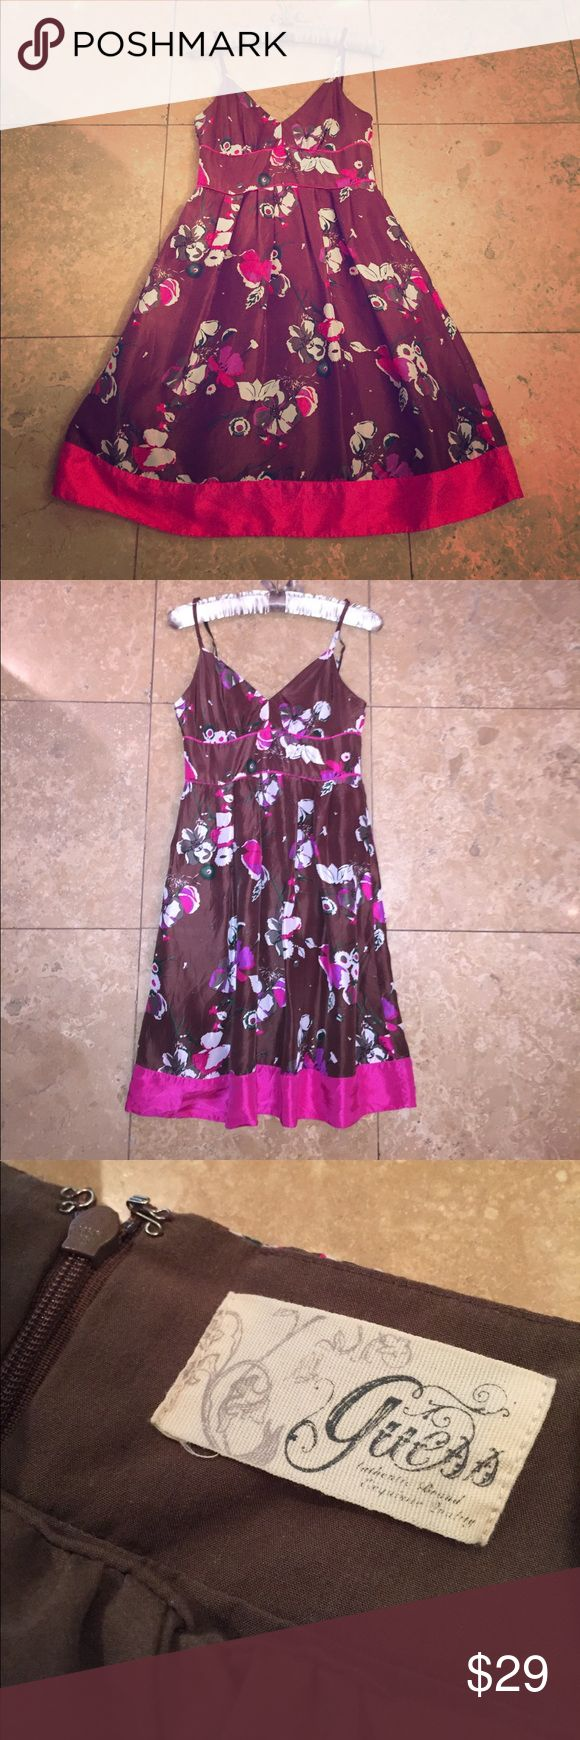 Guess dress EUC deep brown burgundy floral pink Excellent preowned condition Guess dress size 3. 100% silk with blended full lining. Fitted at the top with support for my chest. Lining is brown and dress is a brown with deep burgundy tones. Floral pattern and pink accents. Adjustable straps and zips up the back. Guess Dresses